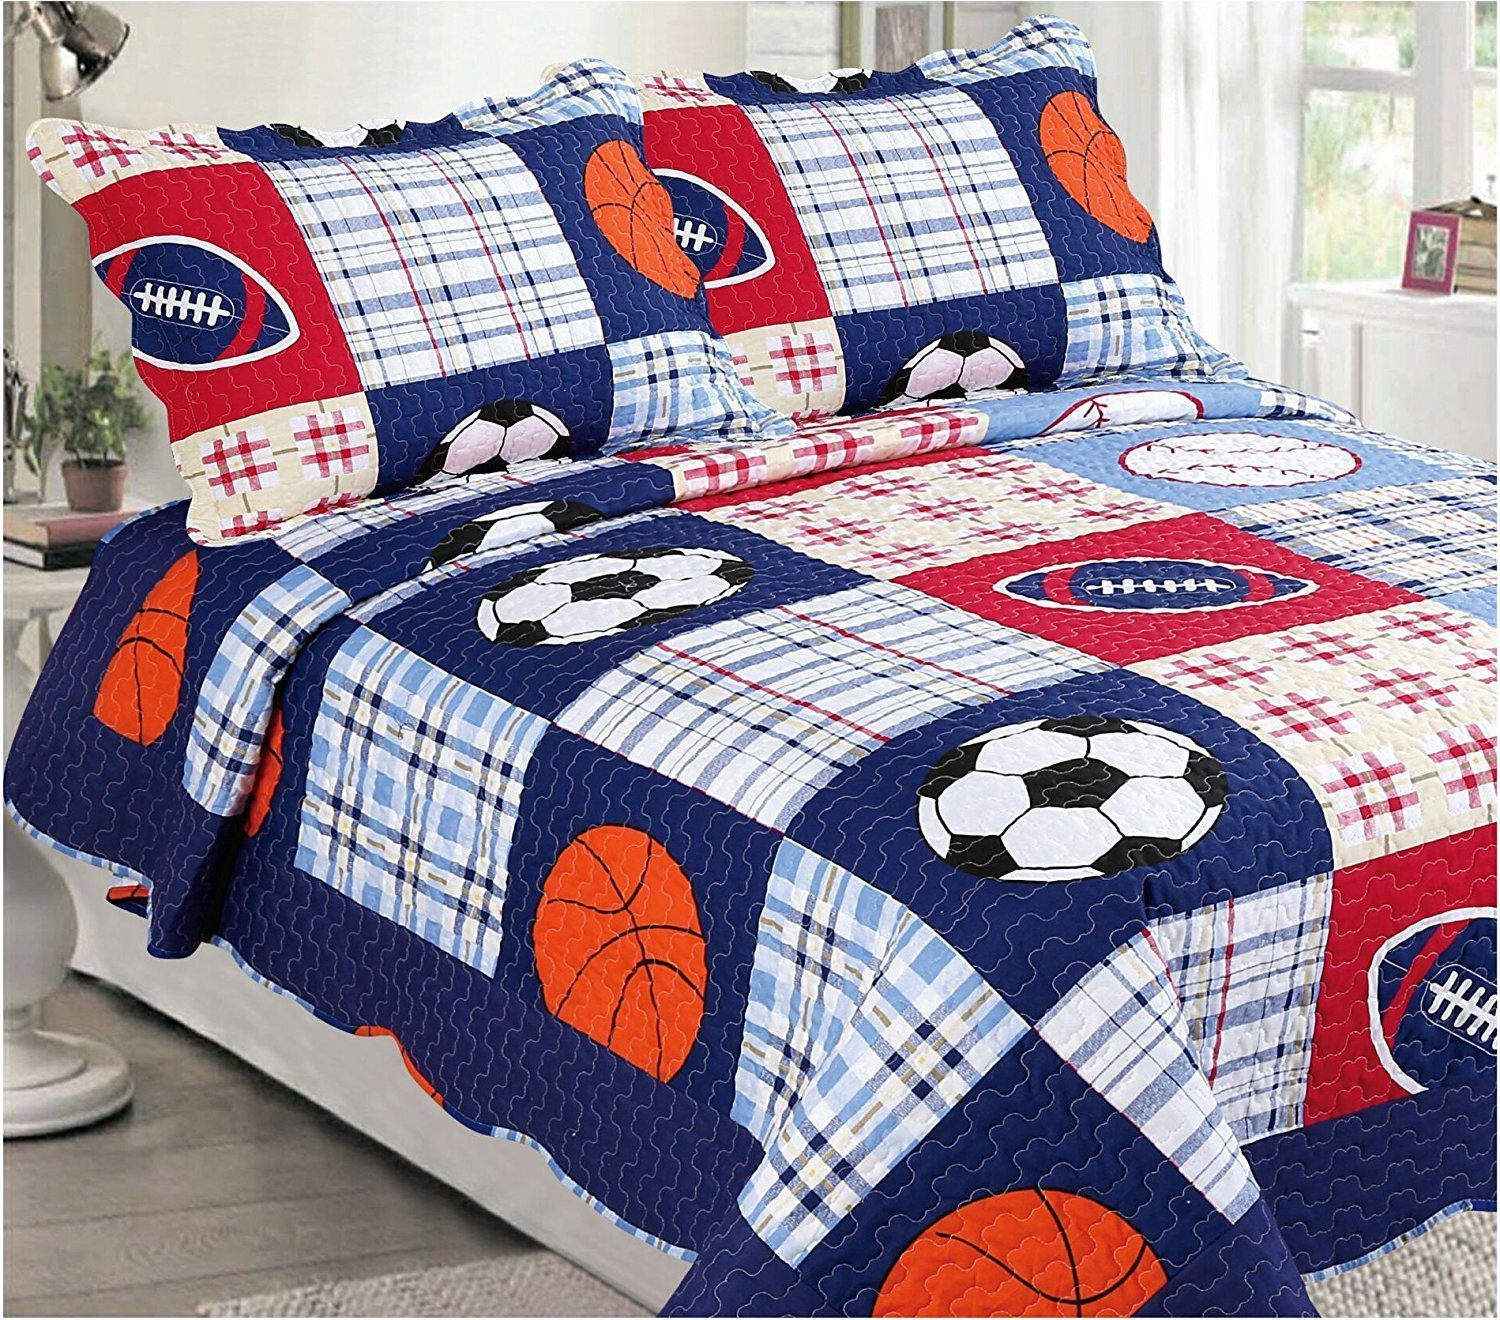 Elegant Home Multicolor Blue Red White orange Patchwork Sports Basketball Football Baseball Soccer Design 3 Piece Coverlet Bedspread Quilt for Kids Teens Boys # 26 (Full Size) by Elegant Home Decor